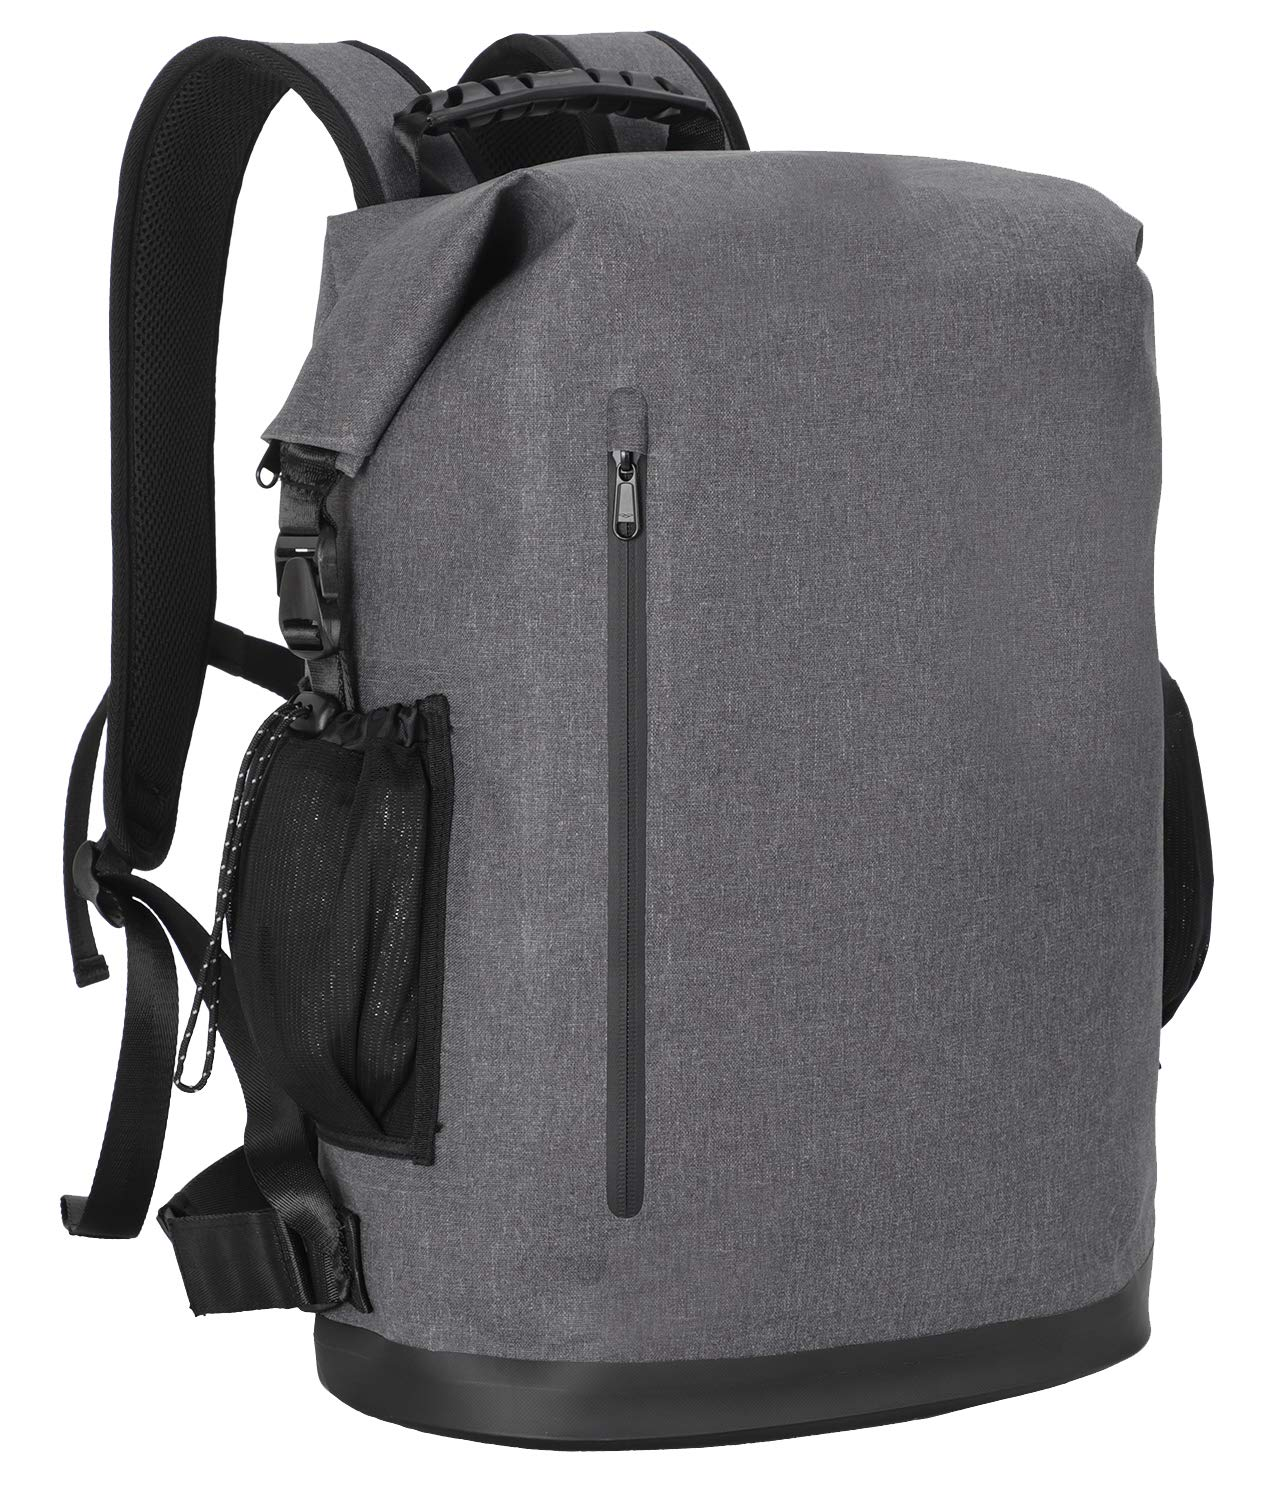 MIER Roll-Top Waterproof Backpack for Men and Women Heavy Duty Dry Bag, Multi Pockets, 30L for Travel, Hiking, Beach, Swimming, Fishing, Kayaking, Camping, Boating, Floating, Grey by MIER